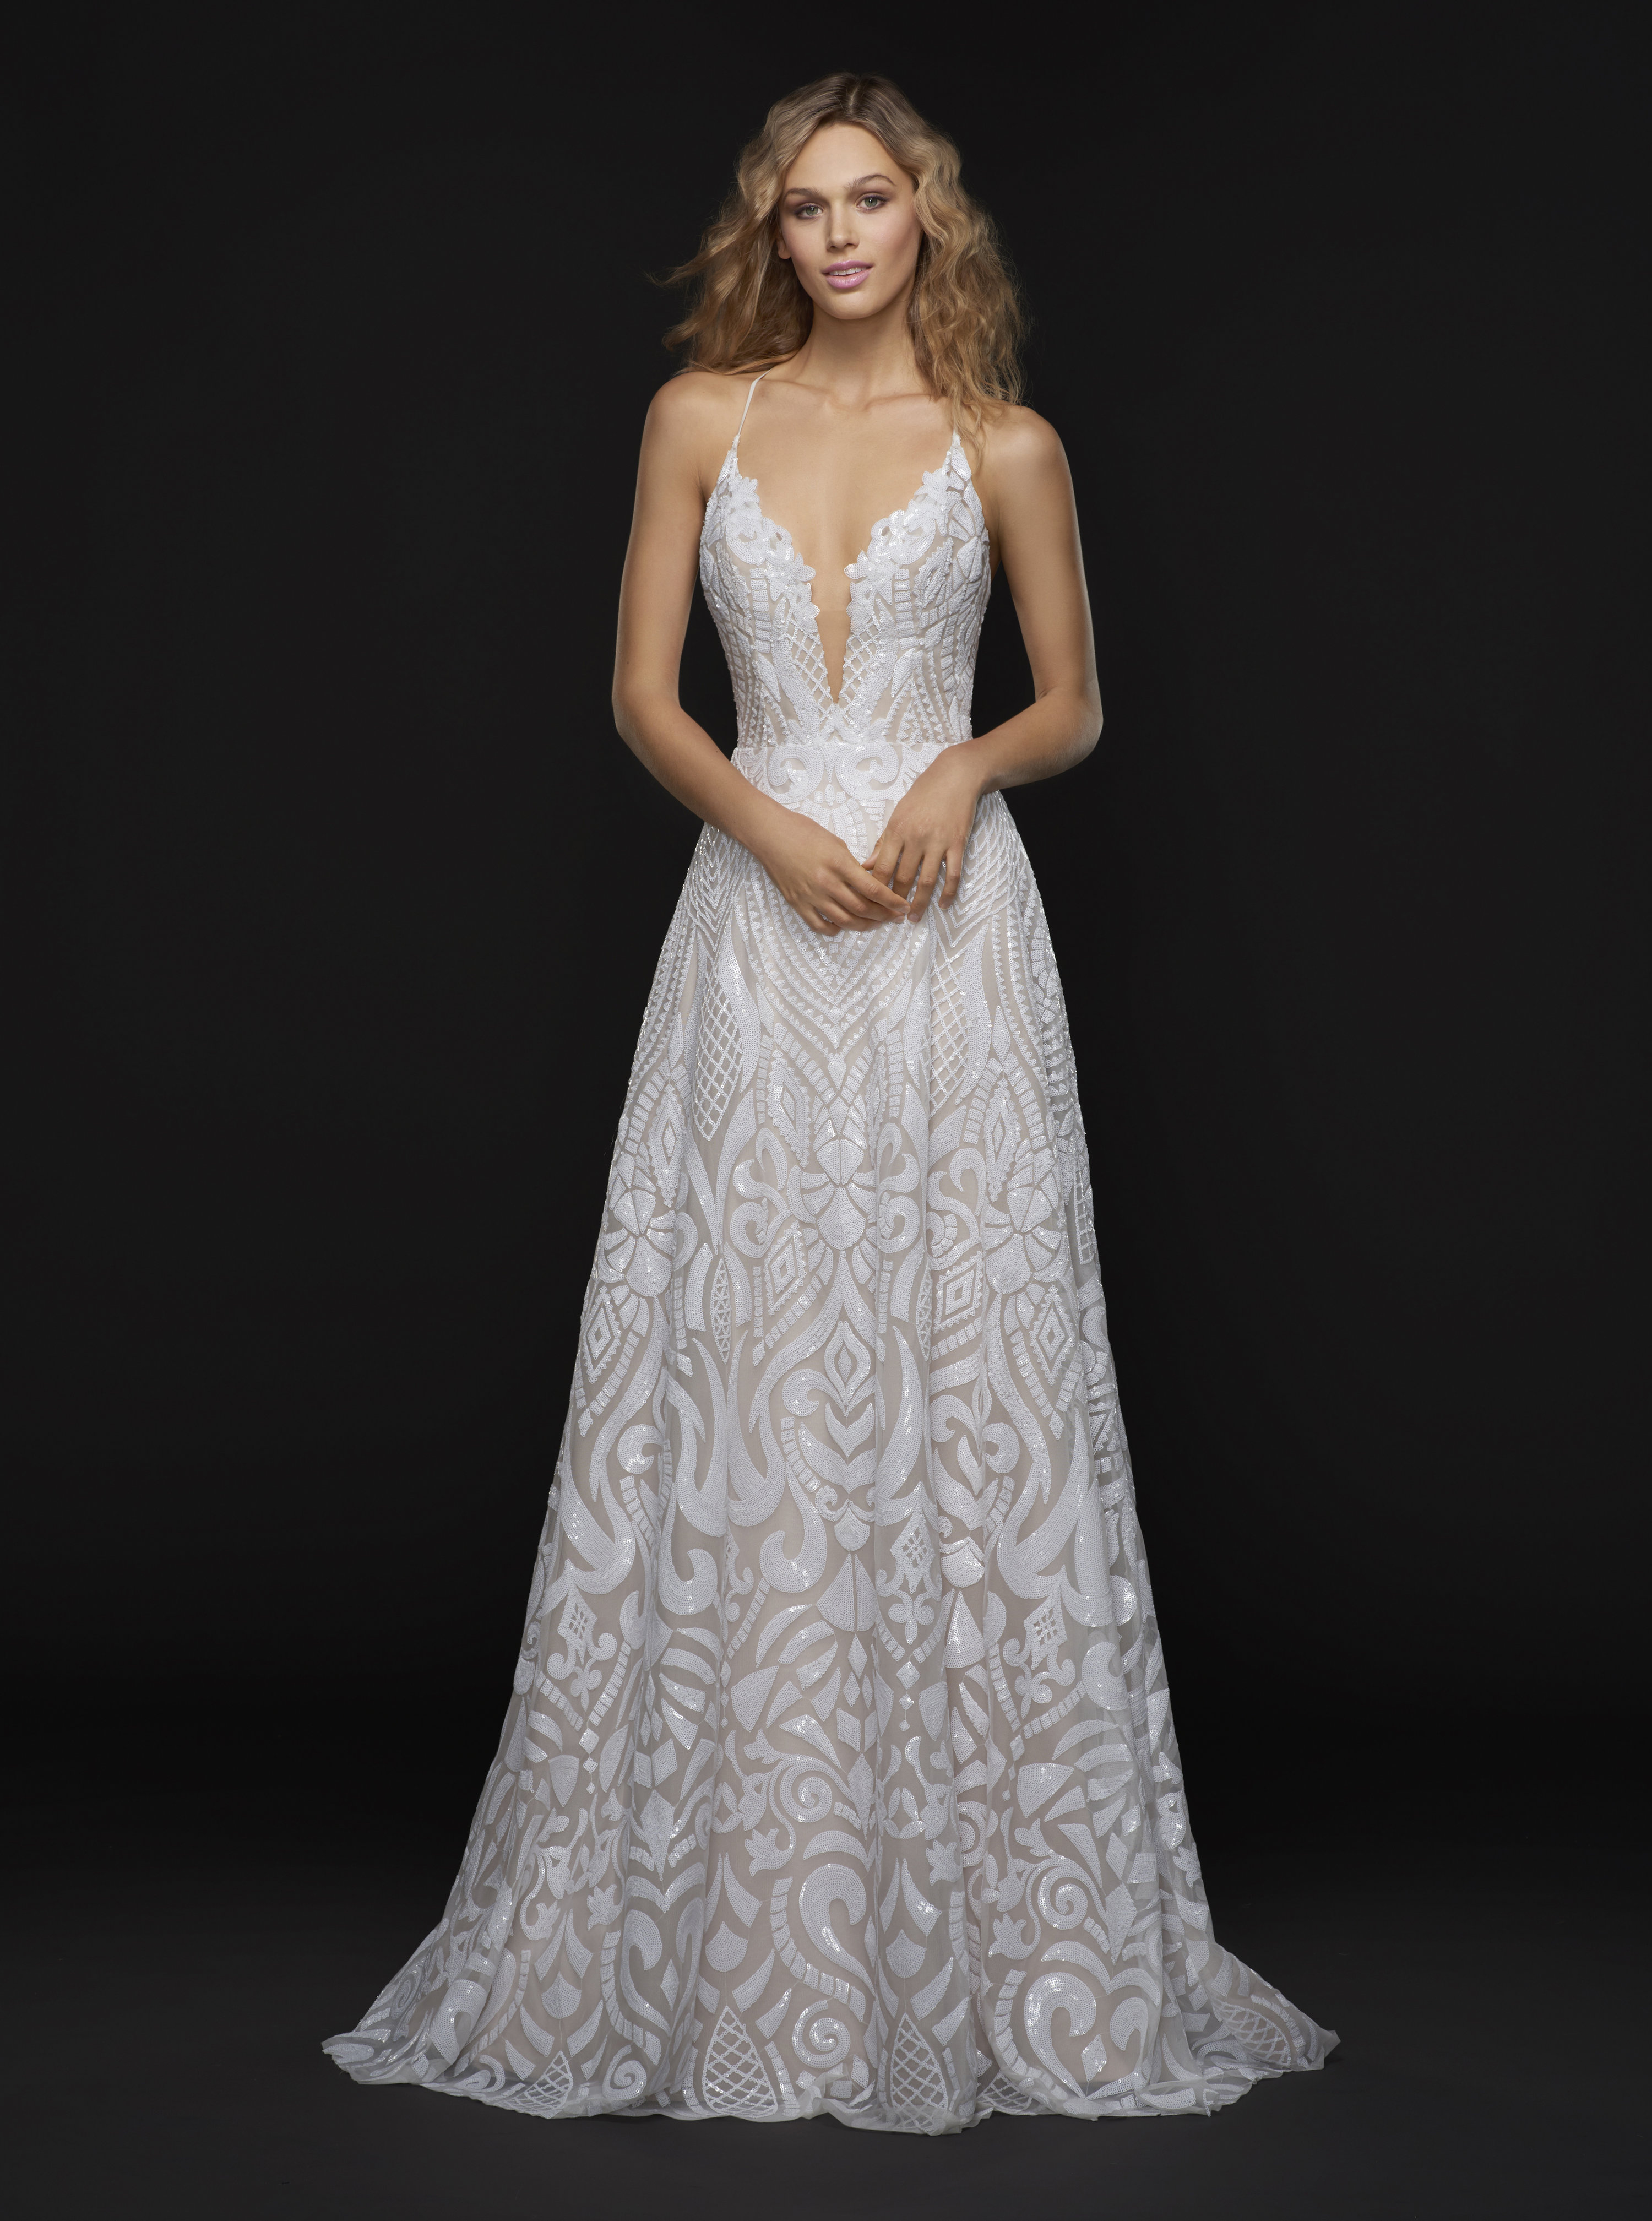 Bridal Gowns and Wedding Dresses by JLM Couture - Style 1751 Delta